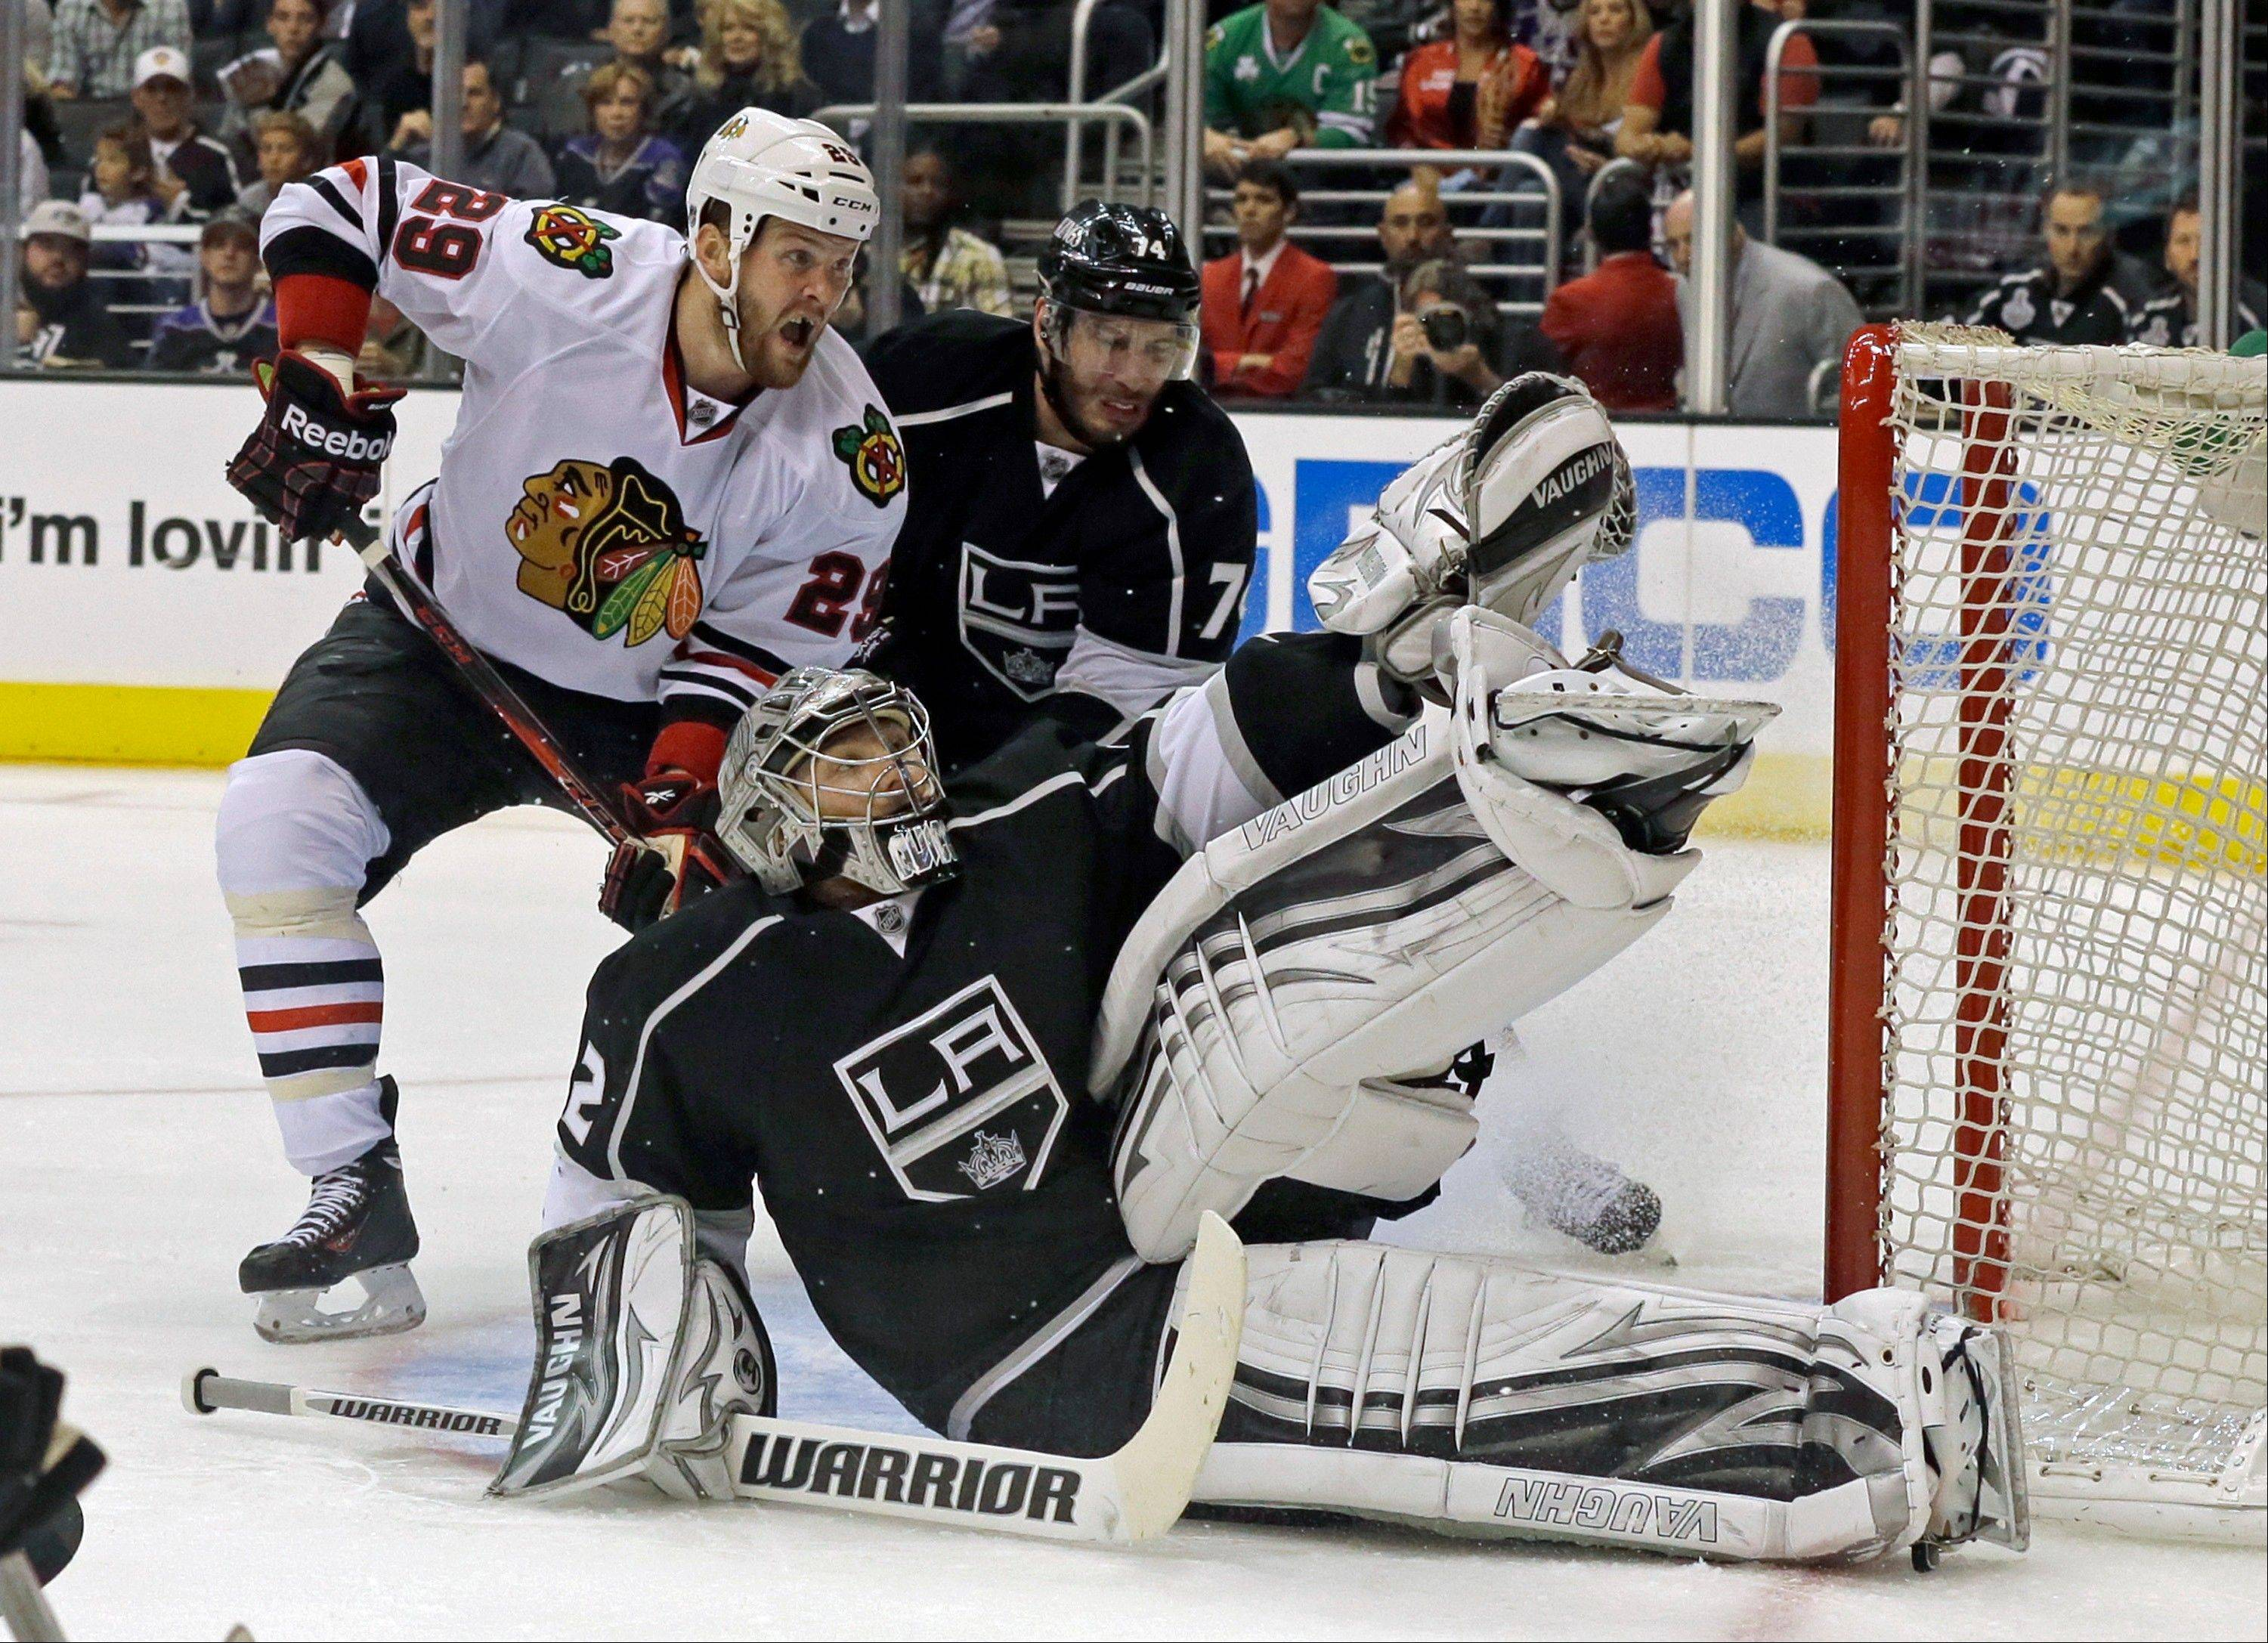 Kings goalie Jonathan Quick saves a shot on goal in front of center Dwight King (74) and Chicago Blackhawks left winger Bryan Bickell (29) in the third period of Game 4 of the NHL hockey Stanley Cup playoffs Western Conference finals, in Los Angeles on Thursday, June 6, 2013.